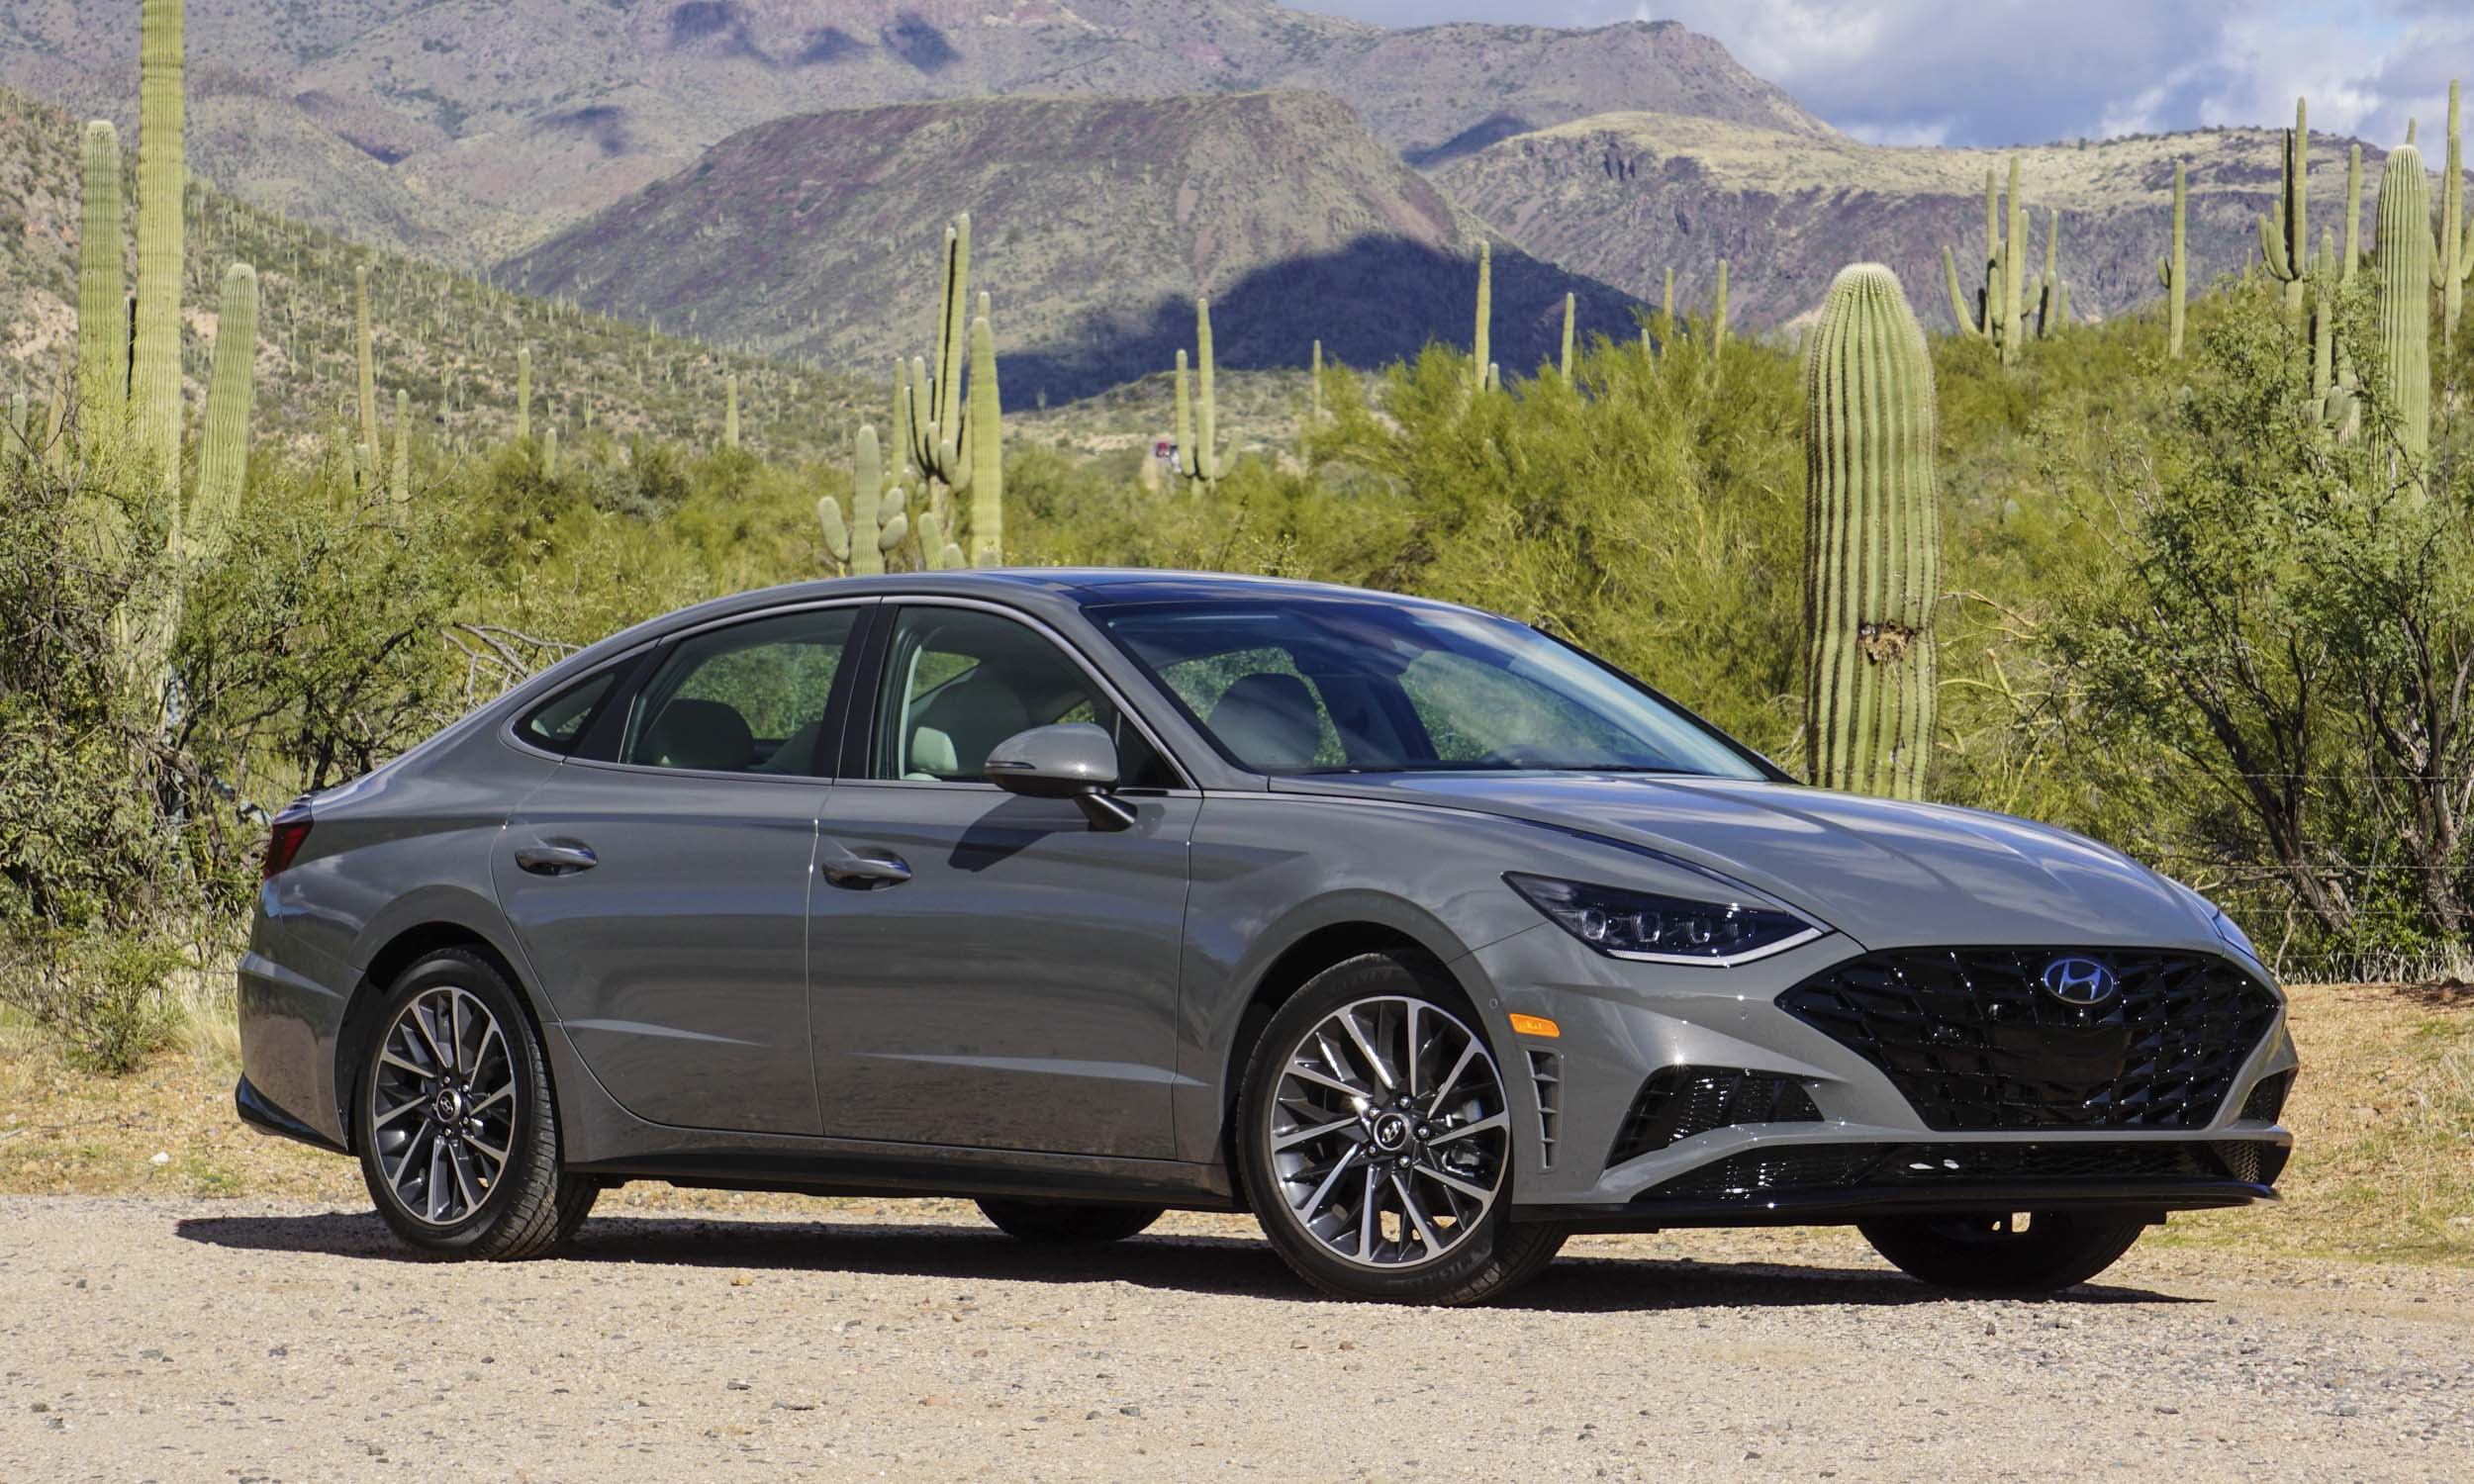 Hyundai Elantra Hybrid and Sonata Hybrid Named Best Cars to Buy 2021 by The Car Connection Brandnewsday1